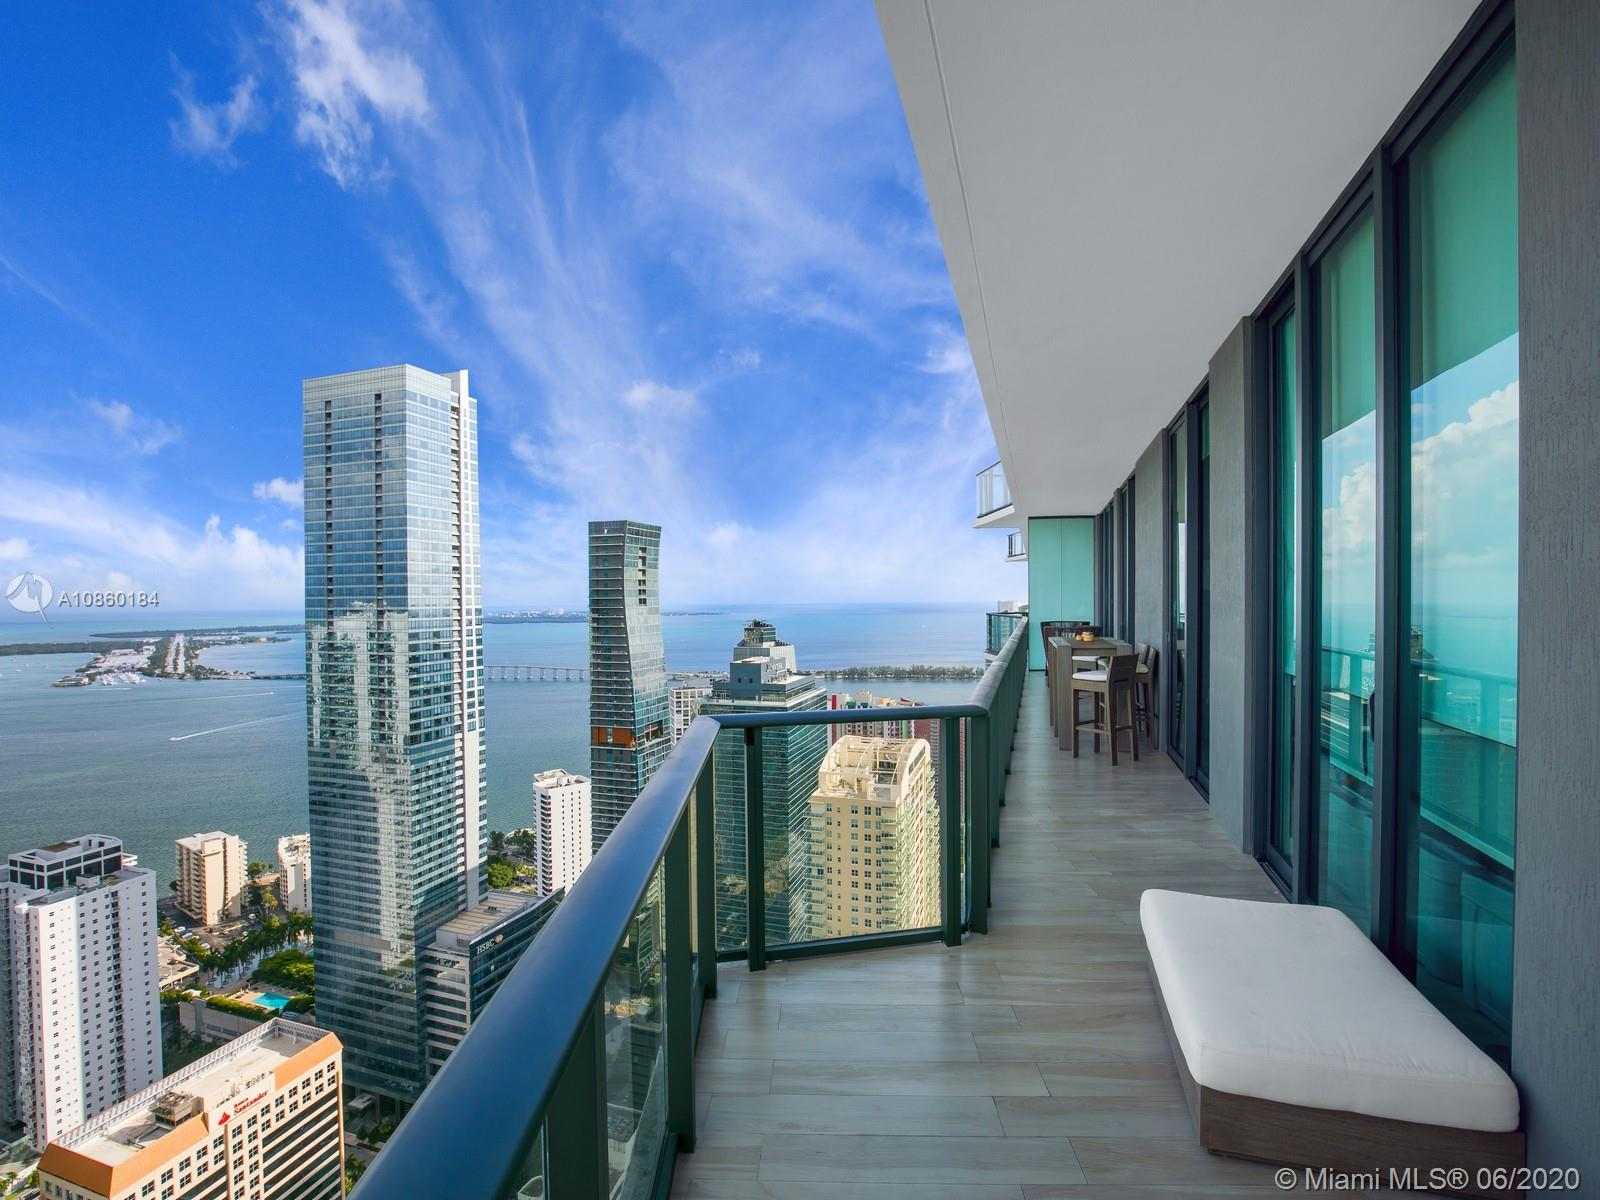 Enjoy breathtaking Bay and City views from this unit located at SLS Brickell. The unit has been tastefully finished & has 3 Bedrooms + DEN, 3.5 Baths, it features top-of-the-line Bosch and Subzero appliances, ceramic wood-like flooring throughout, 10-ff ceilings, floor-to-ceiling windows, gourmet kitchen with marble countertops, custom closets in all bedrooms, and a spacious master bedroom. SLS Brickell offers its residents a number of lavish amenities, including a state-of-the-art fitness center; rooftop pool with city and water views; full-service spa; pool terrace with 200 foot-long heated pool, private cabanas, and al fresco dining; full-service concierge; Kids room; party room; and on-site fine-dining restaurants by Michael Schwartz and Jose Andres. Unit comes with 2 parking spaces.